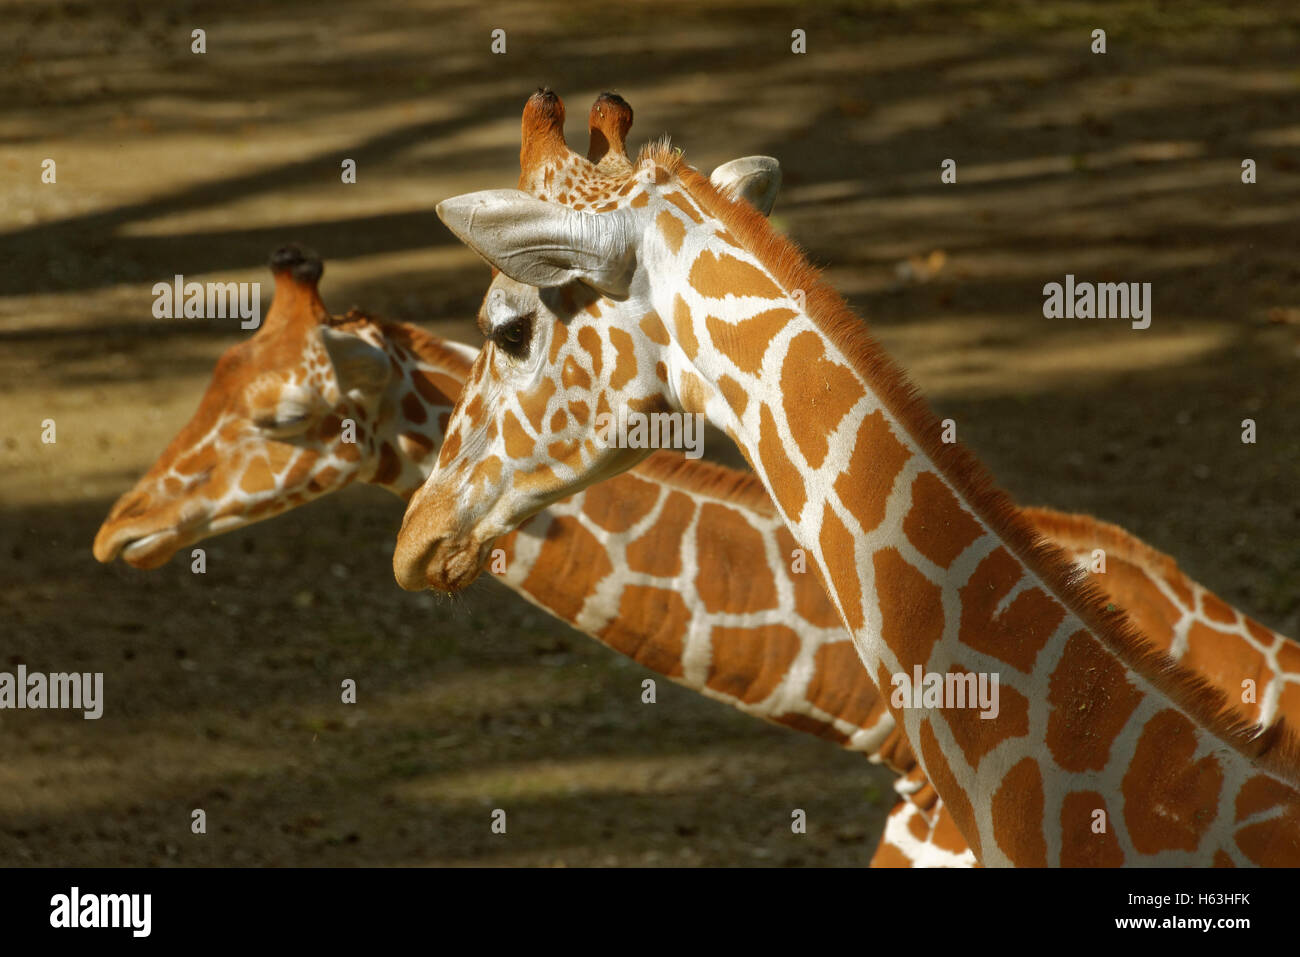 Giraffe (Giraffa camelopardalis) is an African even-toed ungulate mammal, the tallest living terrestrial animal - Stock Image